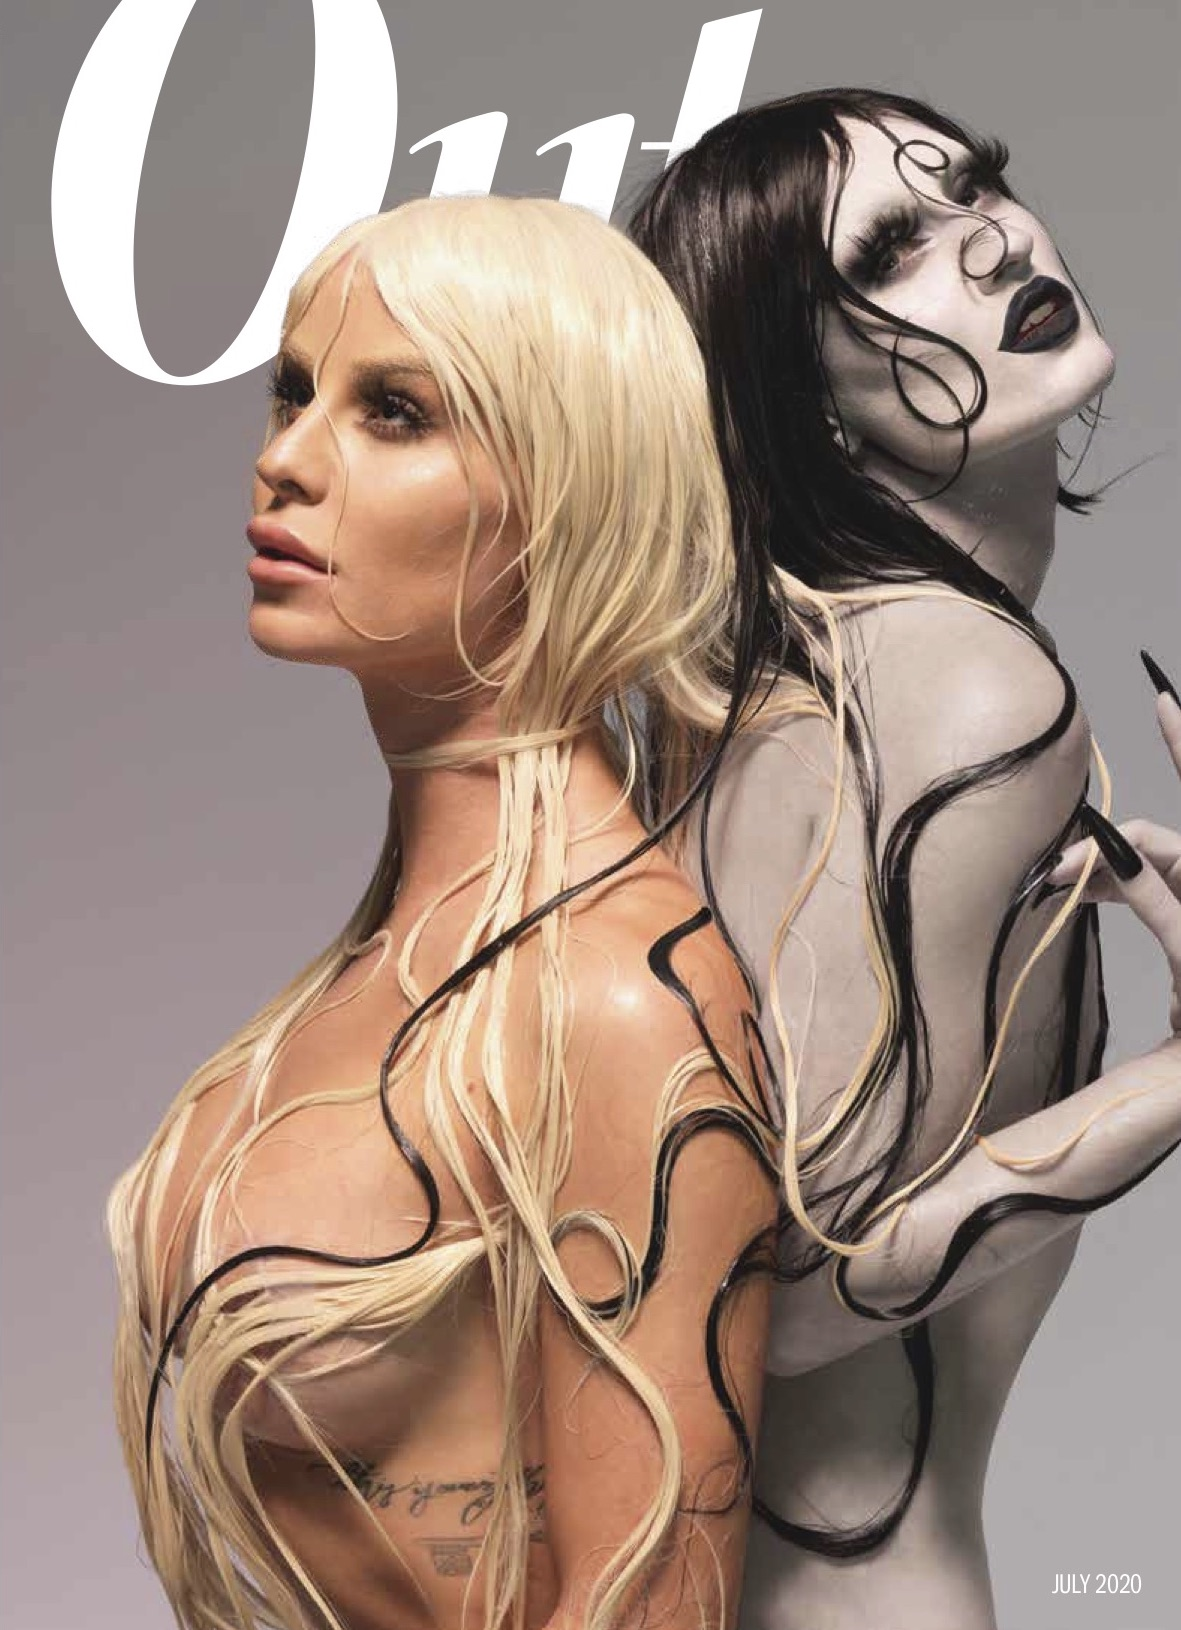 Gigi Gorgeous and GottMik Out cover